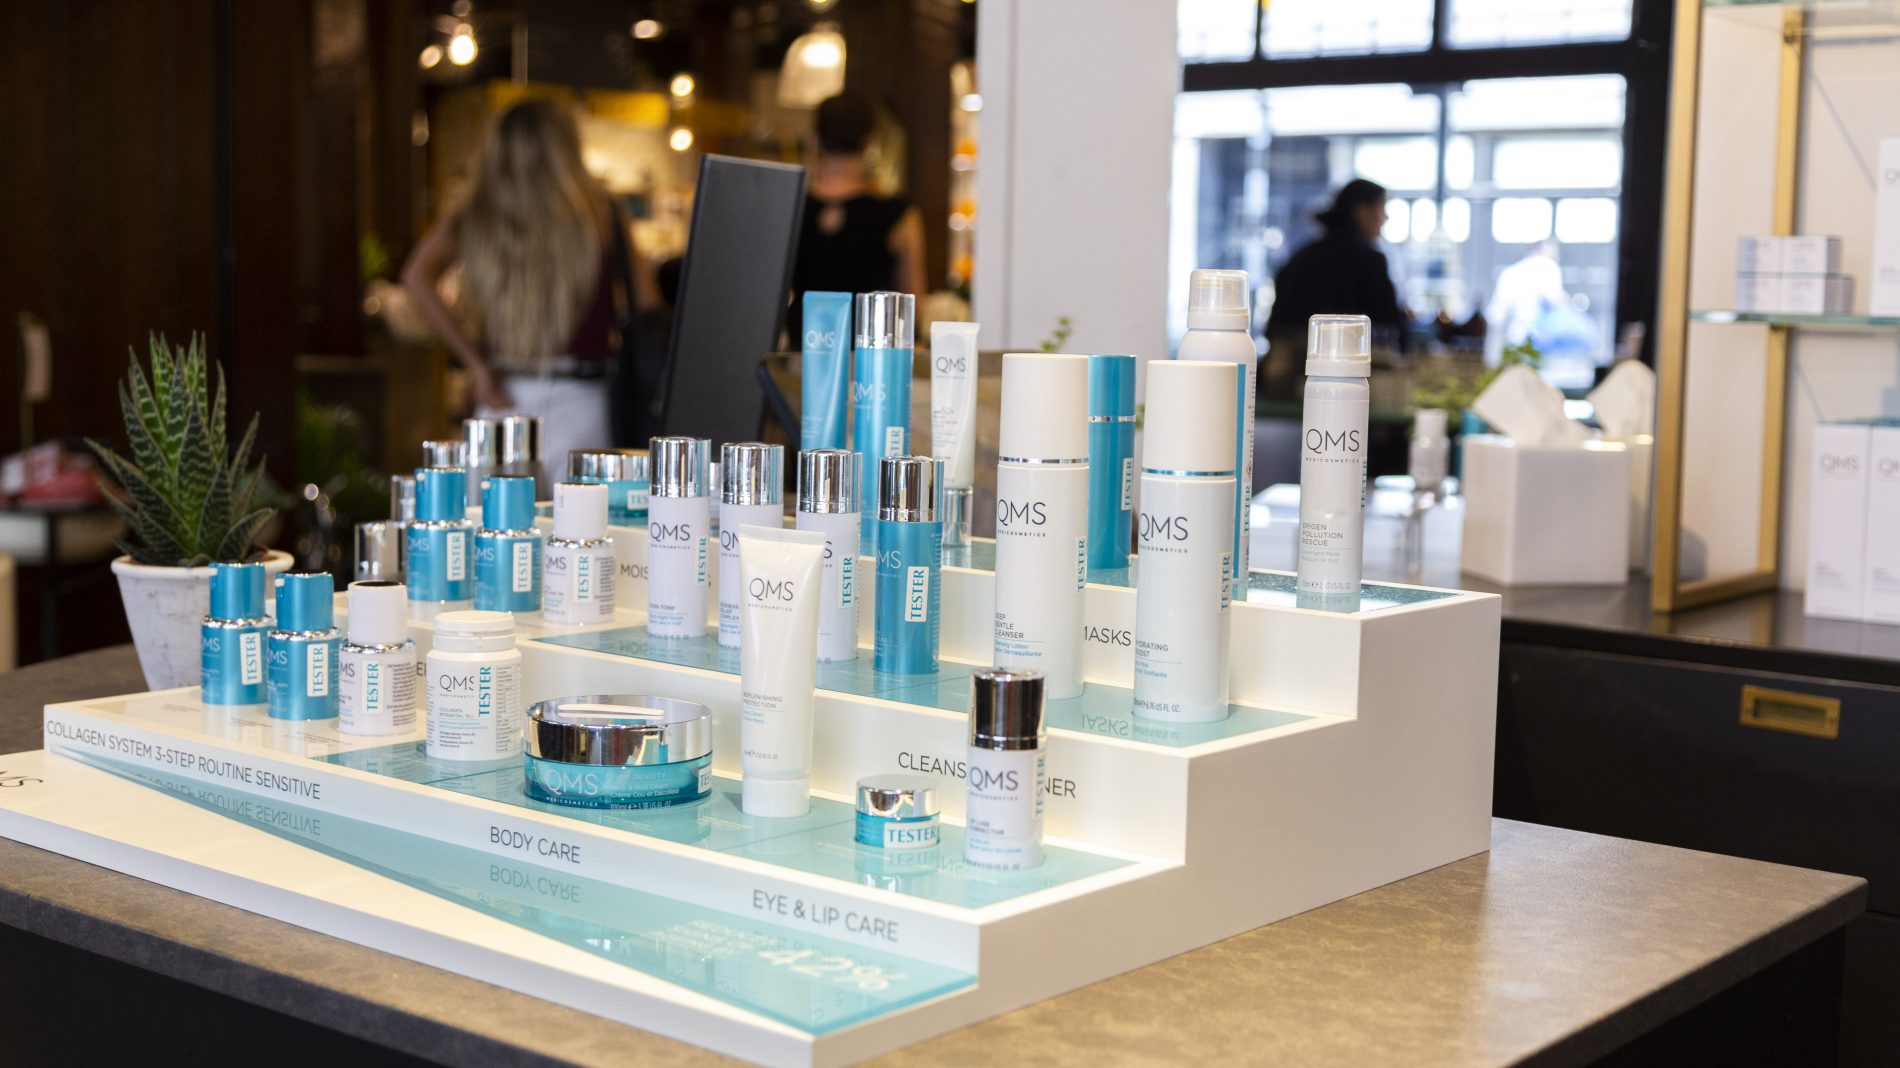 QMS cosmetics table top Liberty's unit